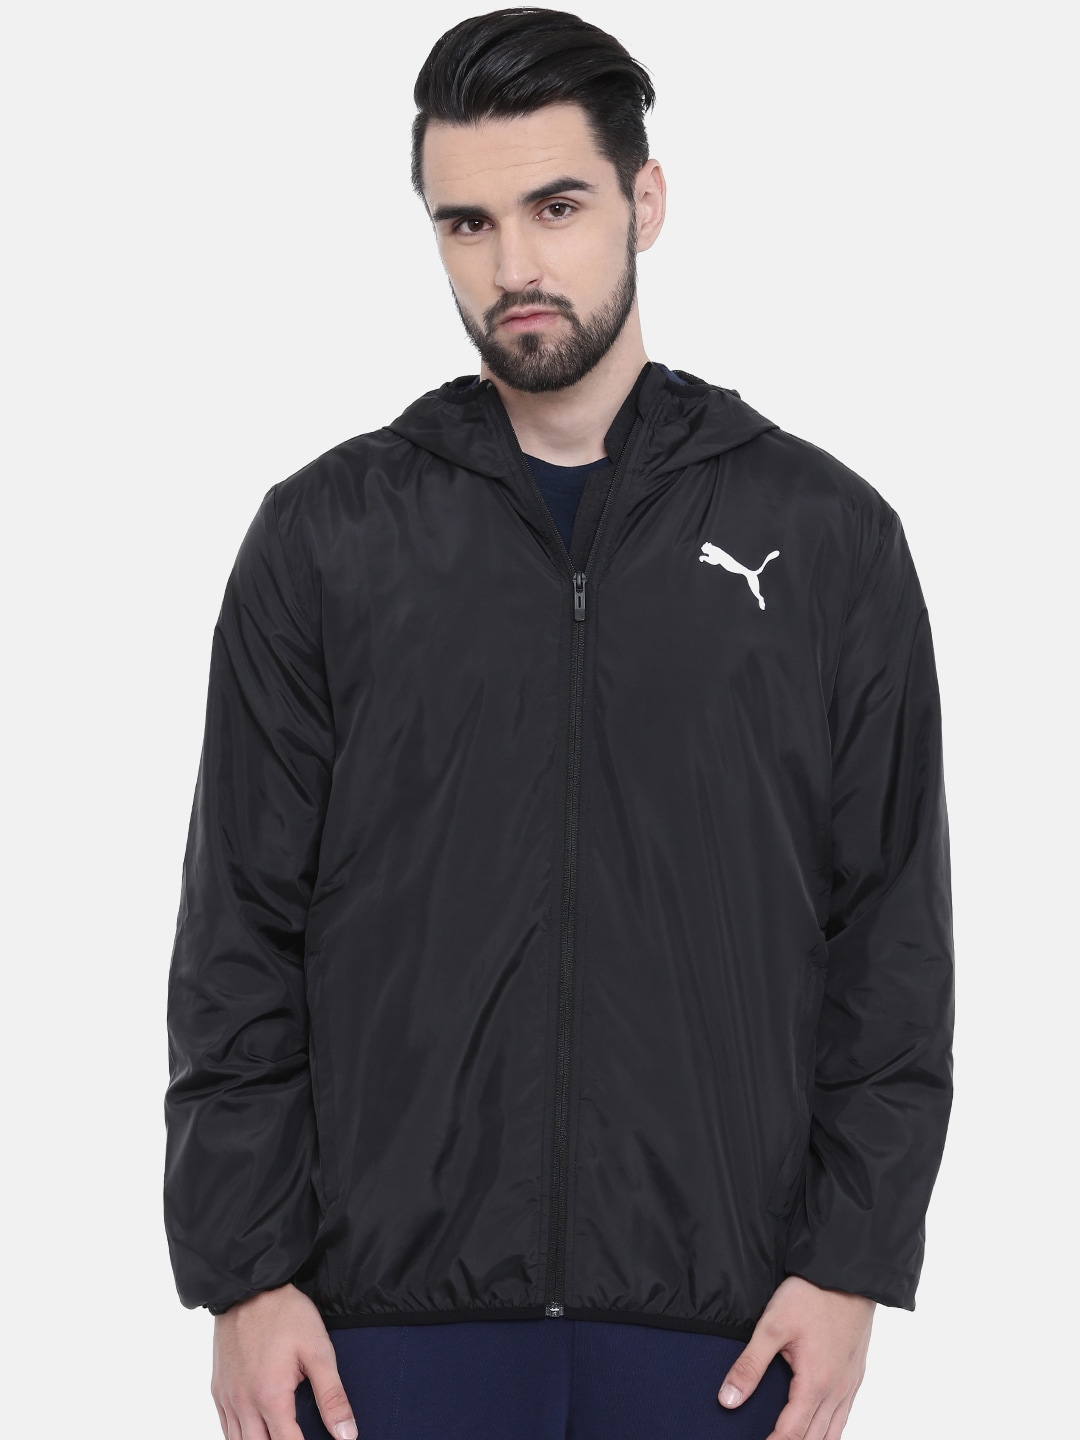 e92fcae65e4 Sports Clothing - Buy Sports Apparels Online in India | Myntra